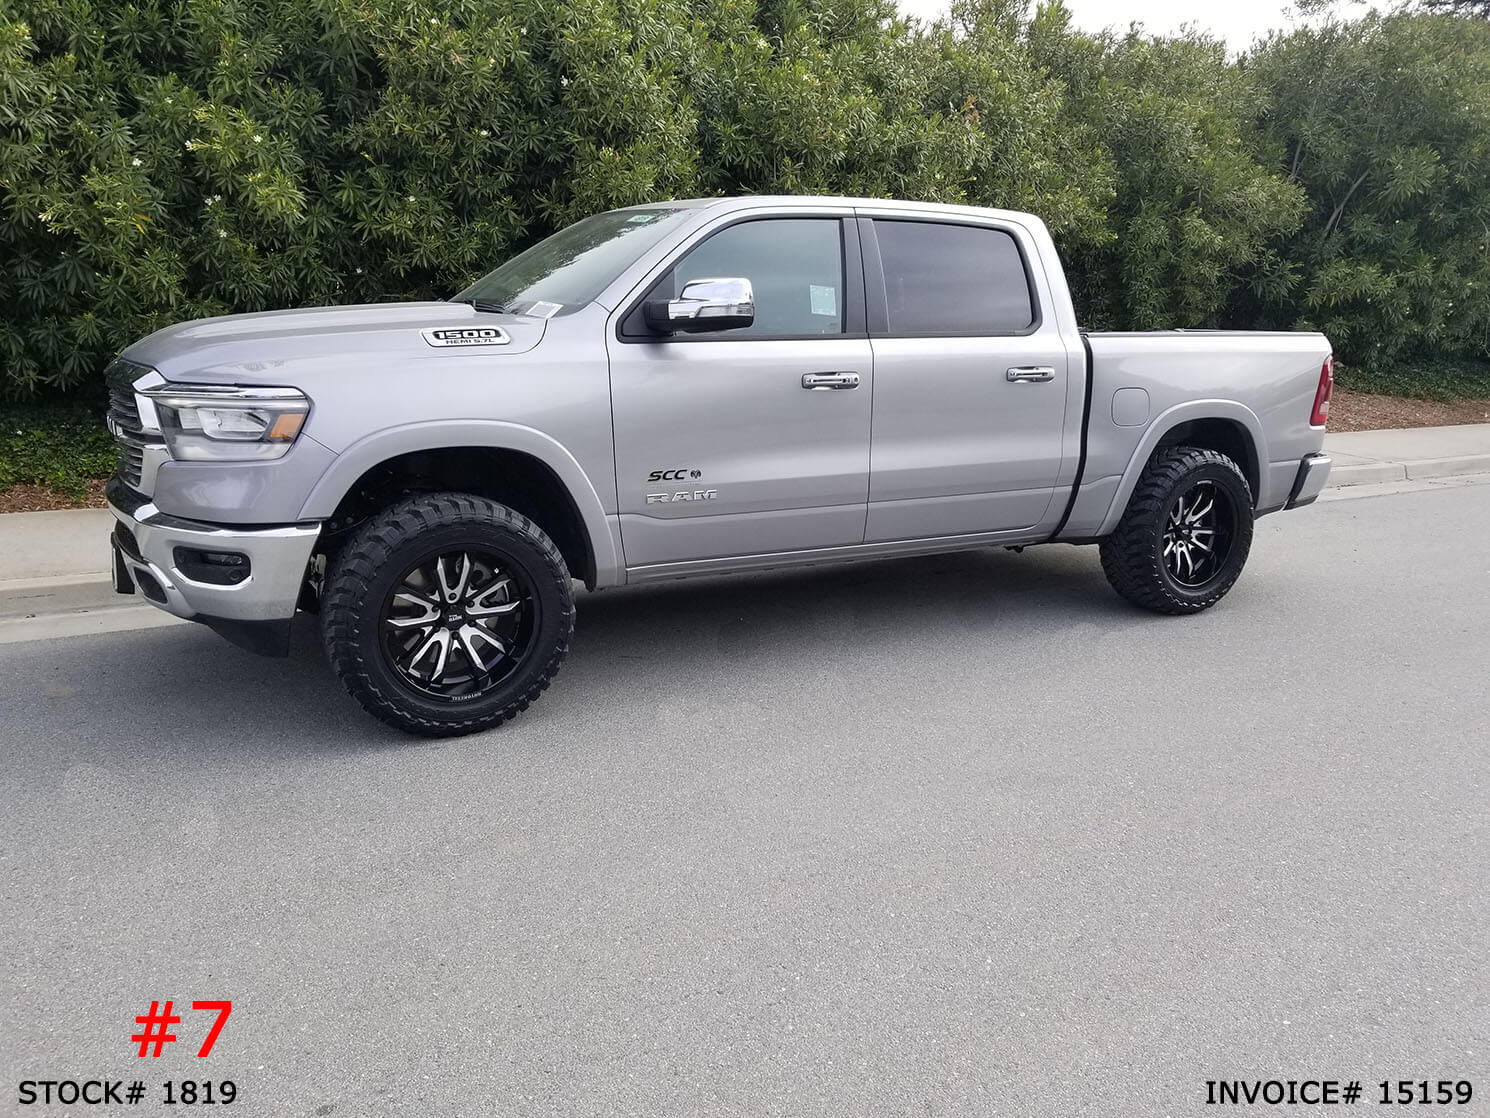 2019 Dodge Ram 1500 Crew Cab 1819 Truck And Suv Parts Warehouse